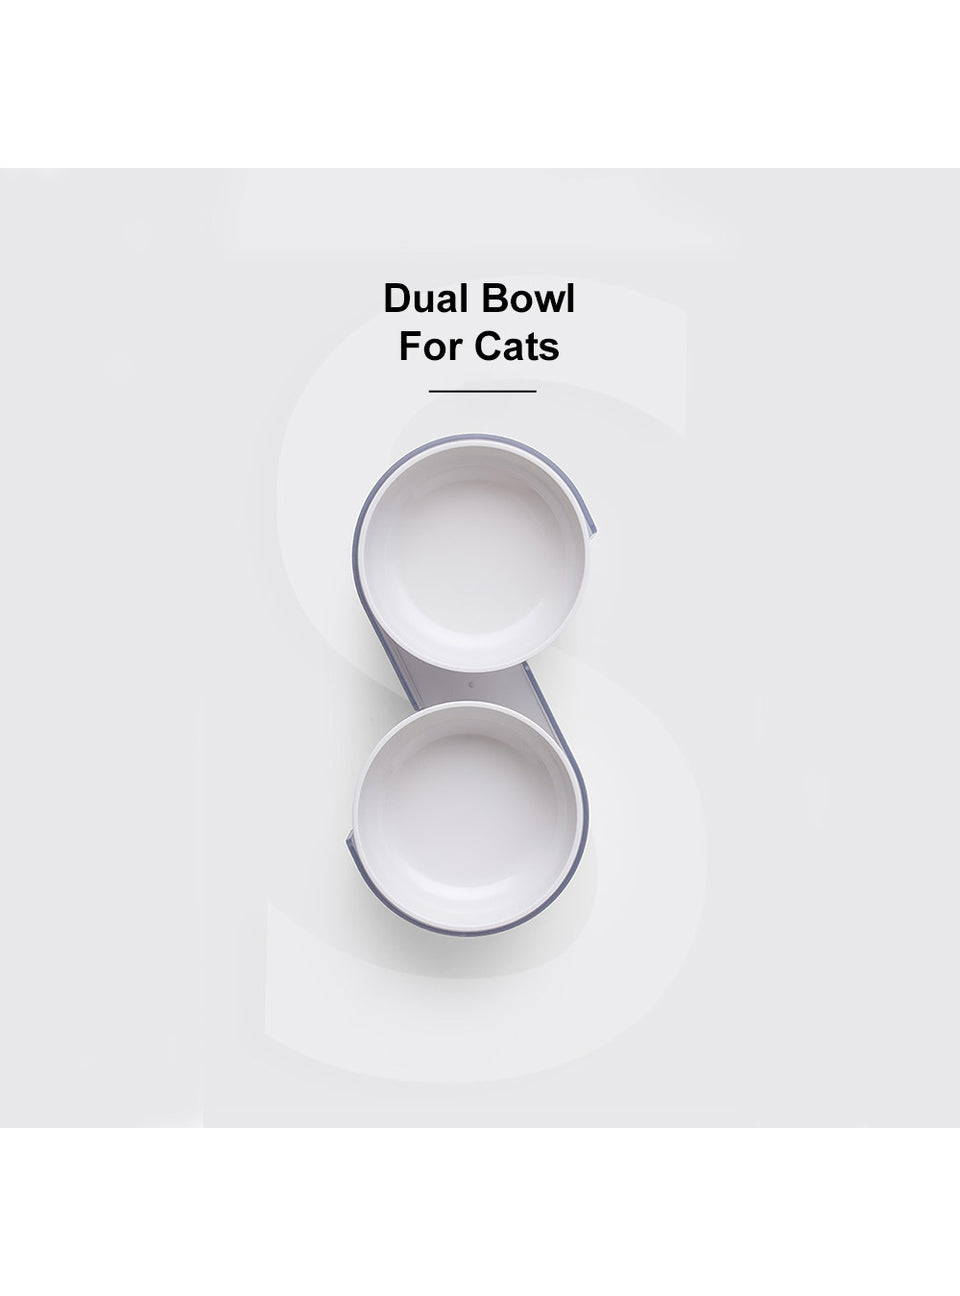 Dual Bowl For Cats